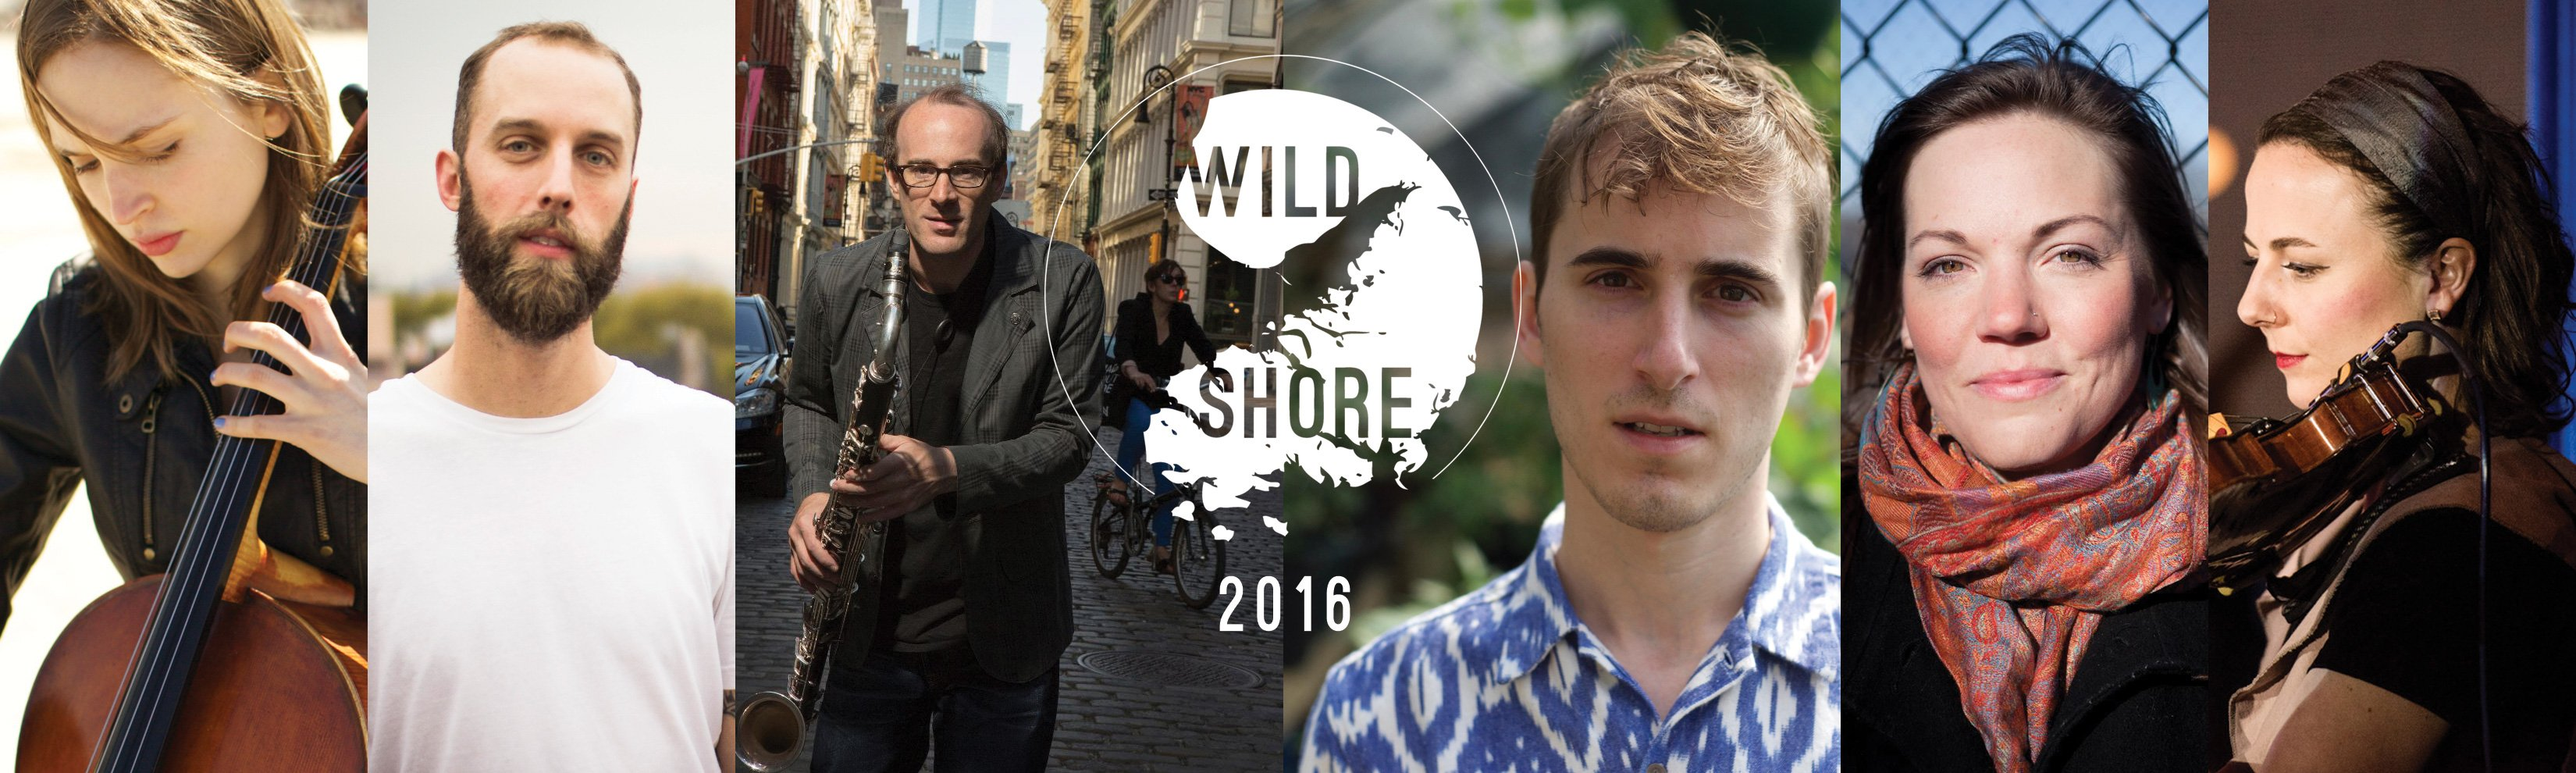 Wild Shore, New Music: August 7-14, 2016